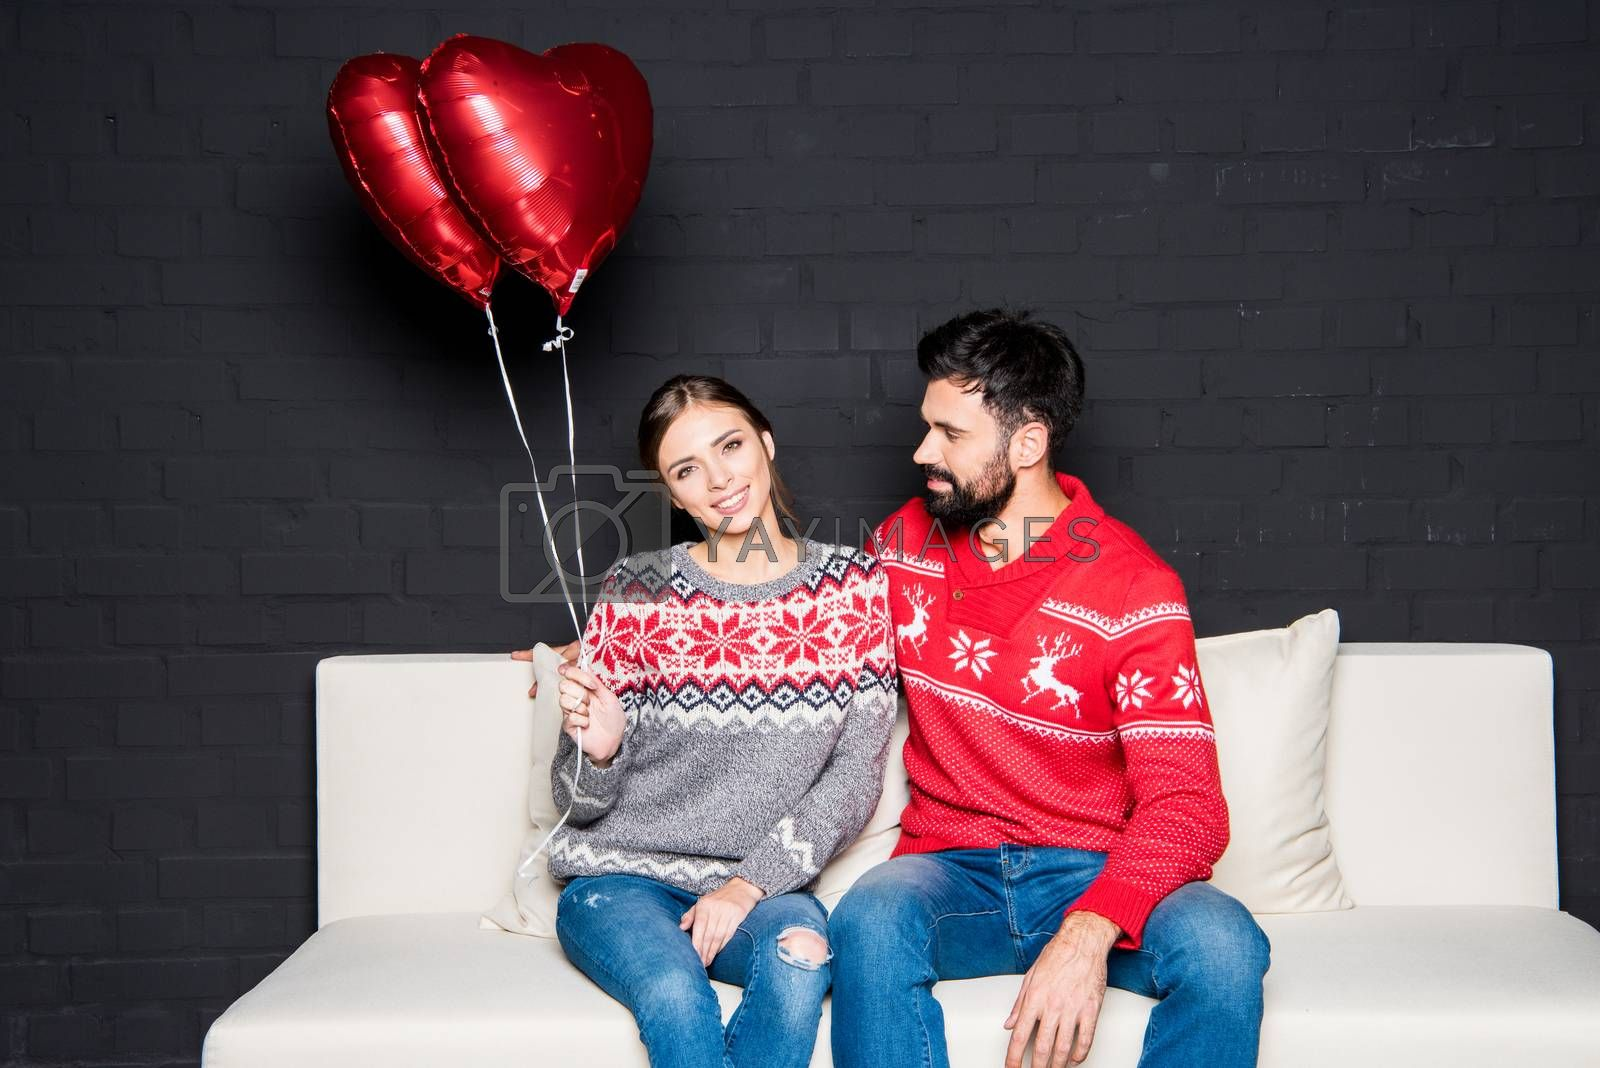 Royalty free image of Couple with red hearts balloons by LightFieldStudios